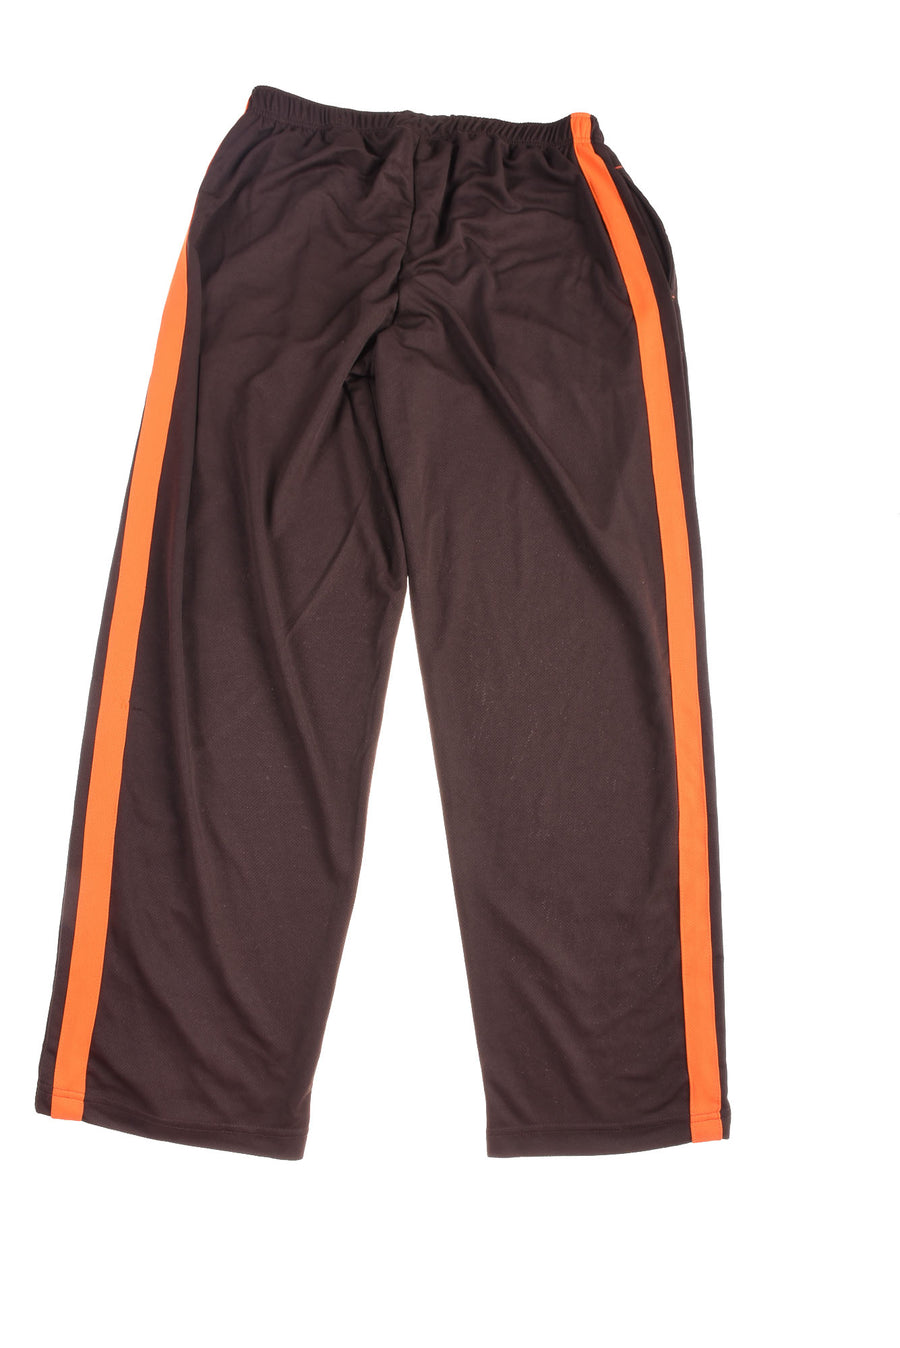 NEW NFL Team Apparel Men's Cleveland Browns Pants Large Brown & Orange